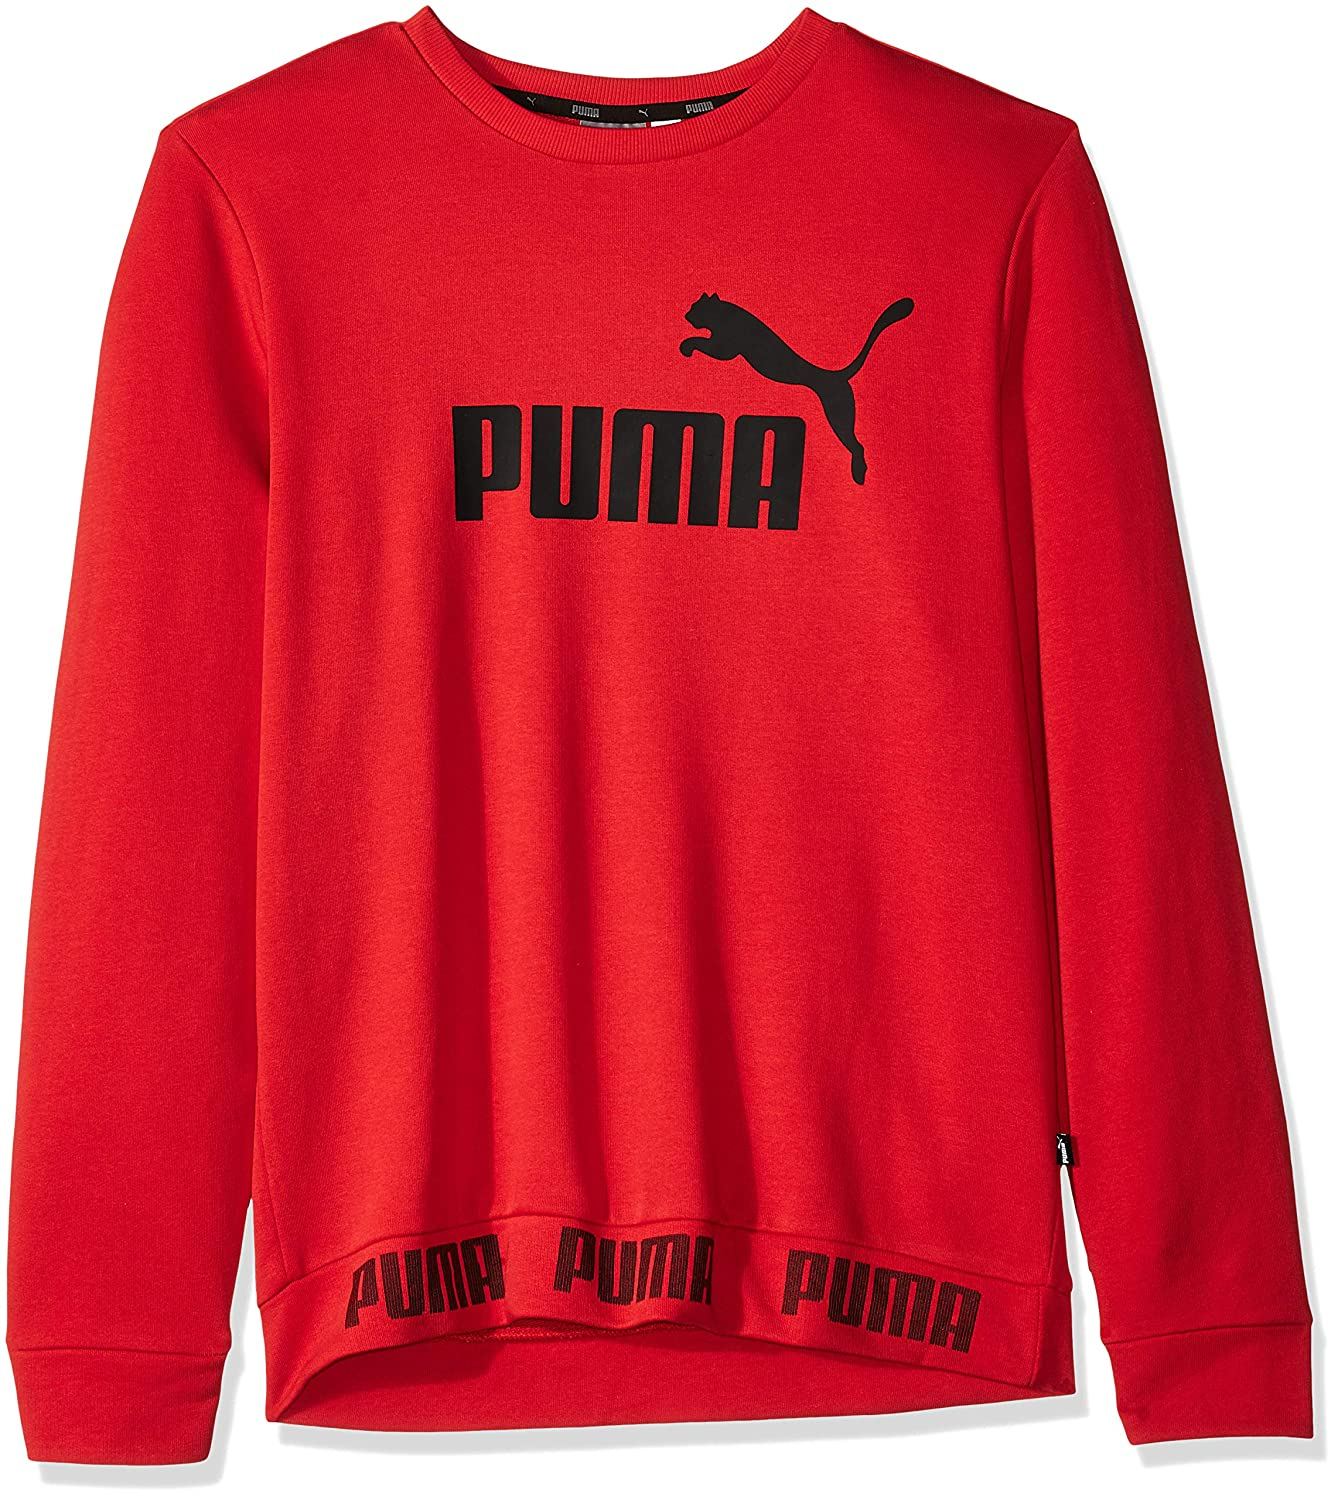 High Risk Red Medium PUMA Mens Amplified Crewneck Sweatshirt Sweatshirt